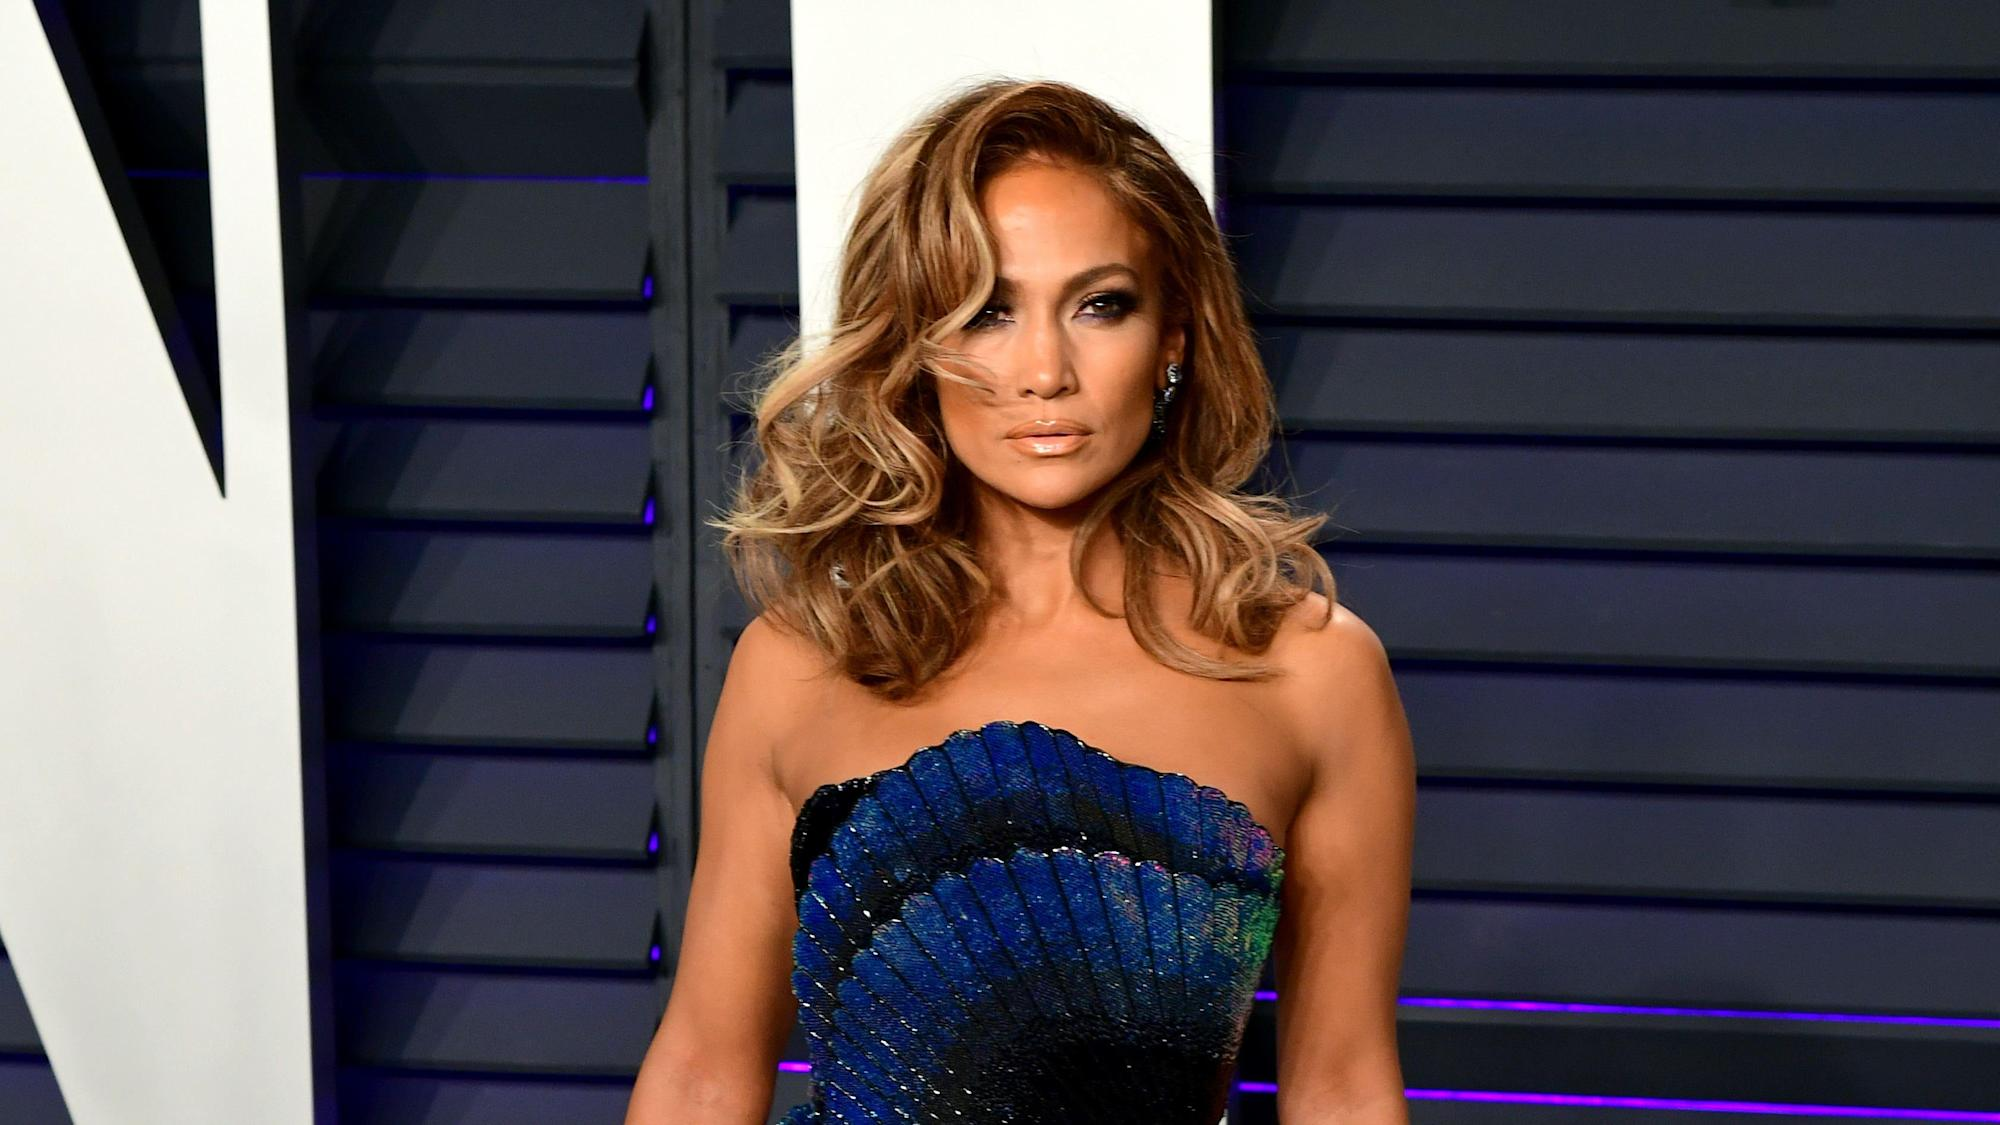 Jennifer Lopez recreates Love Don't Cost A Thing music video